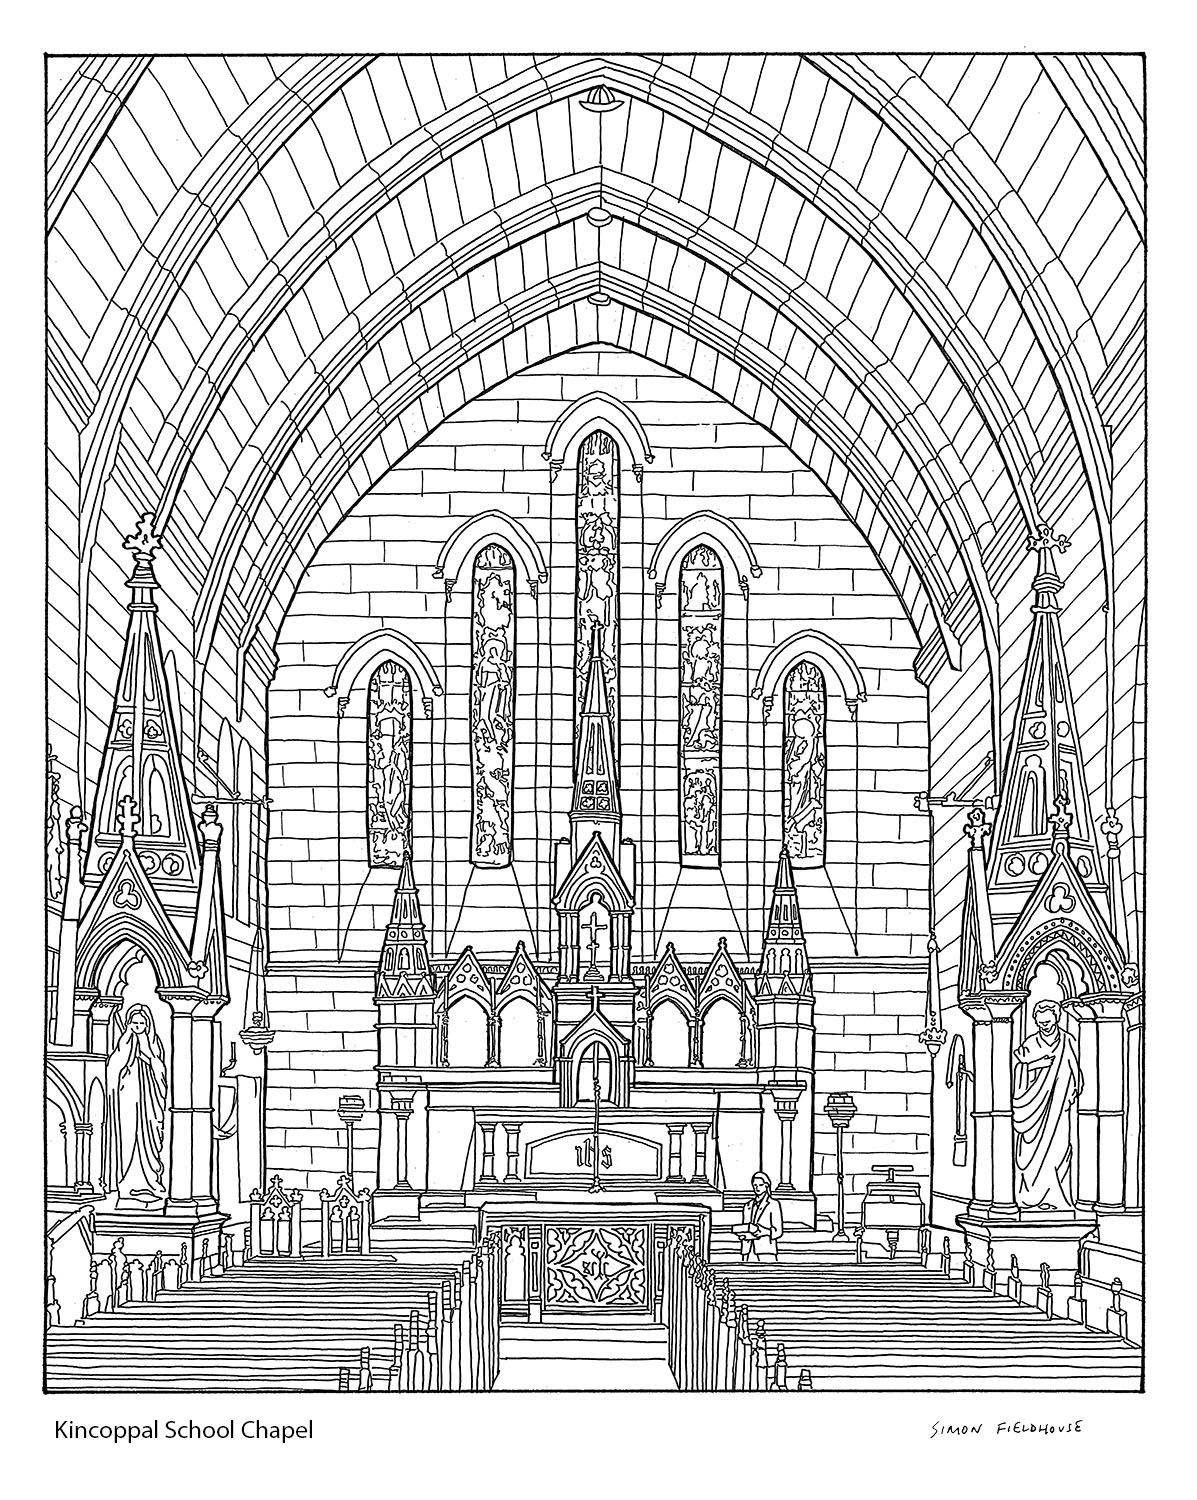 Kincoppal School Chapel Drawing